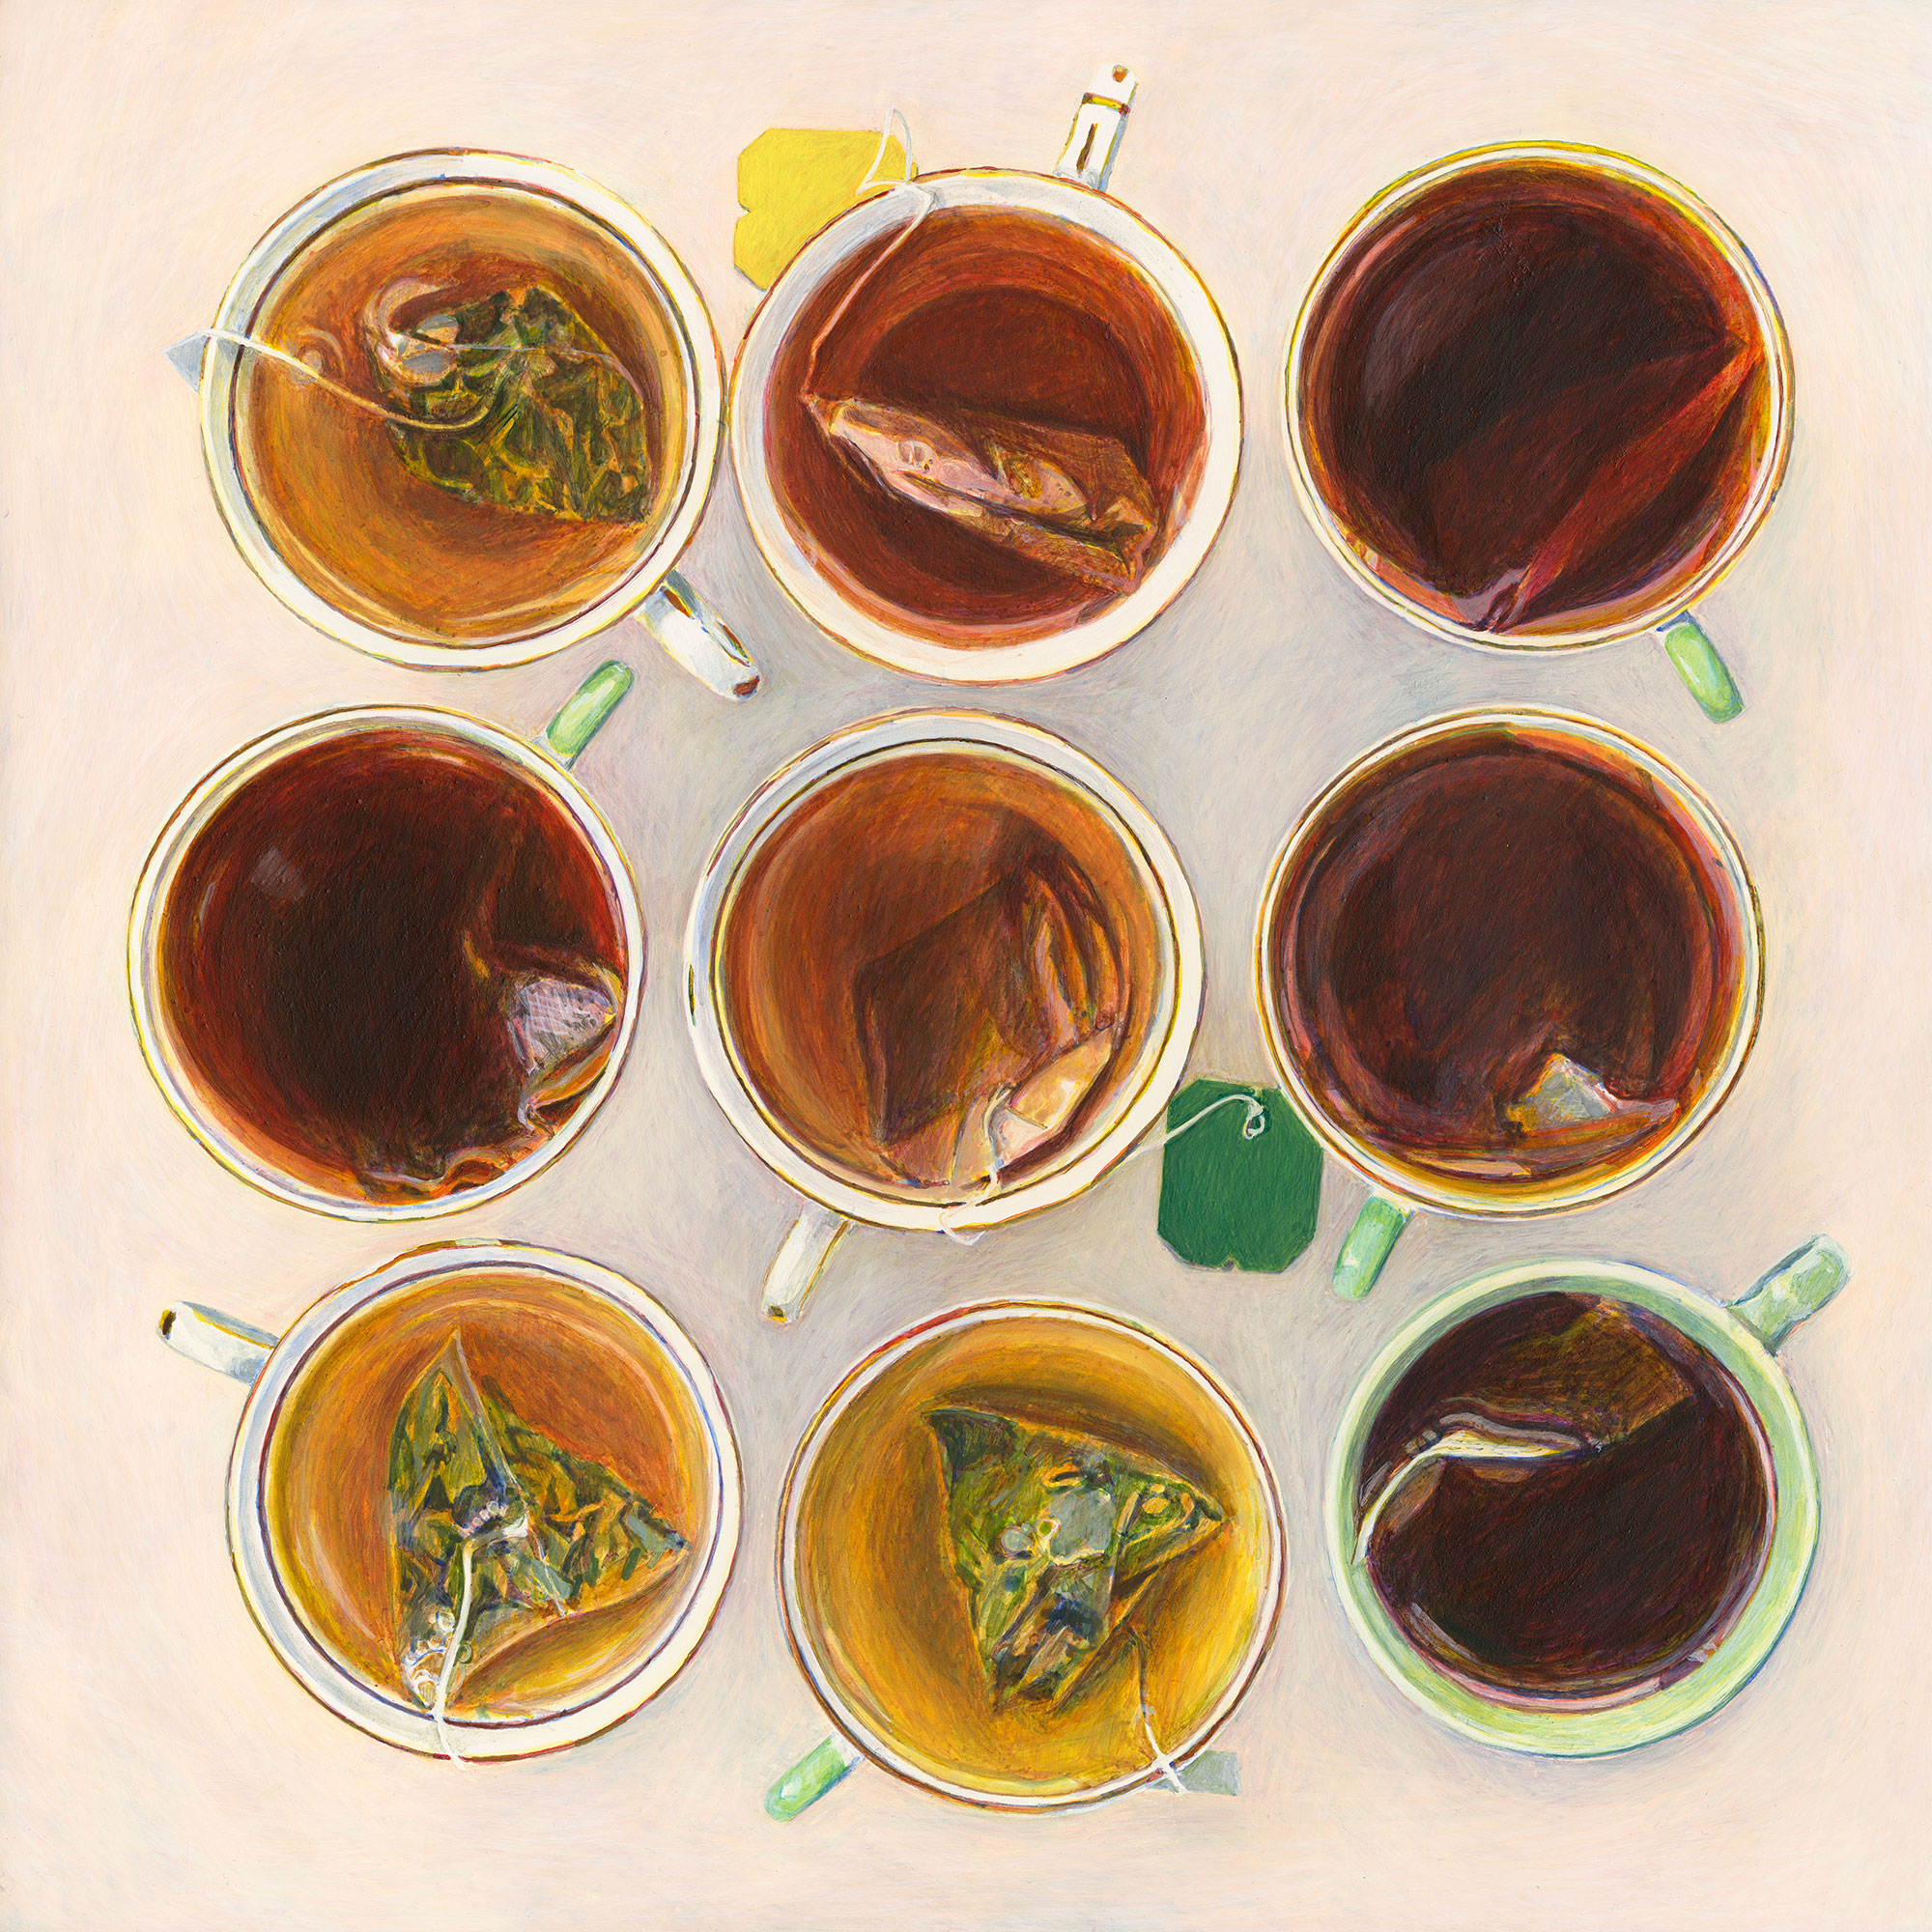 Cups of Tea Illustration